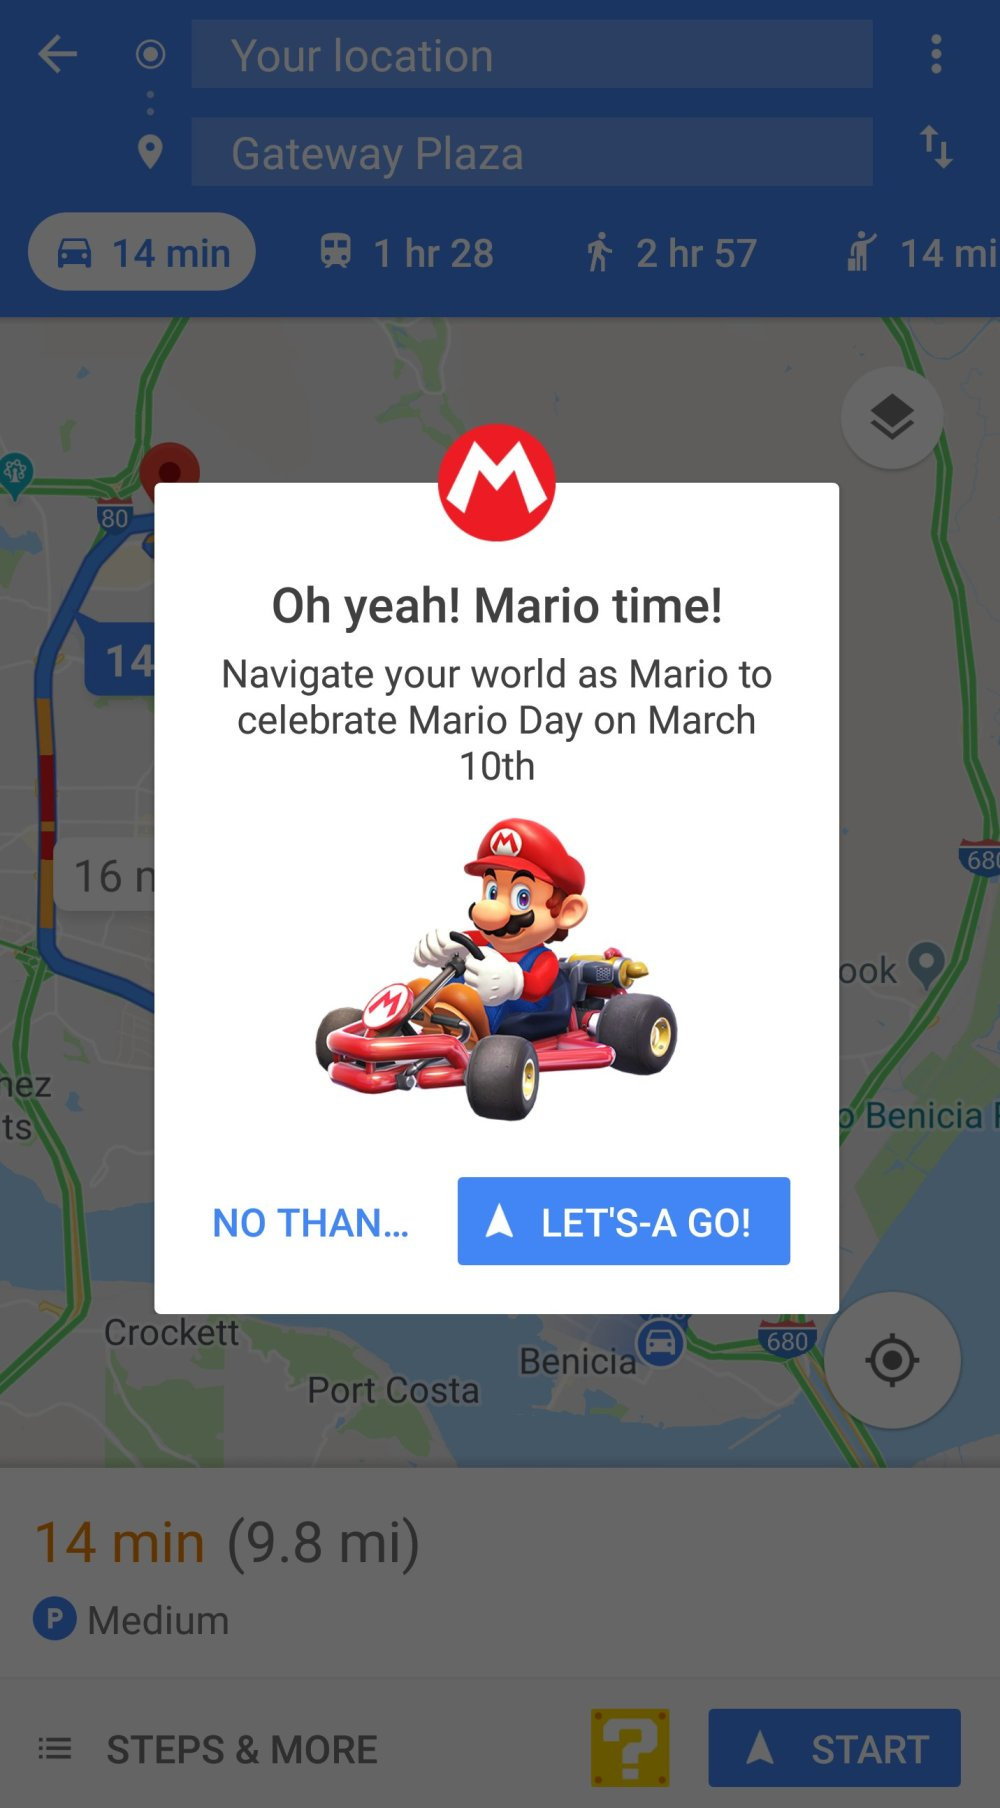 Mario Kart launch screen on Google Maps